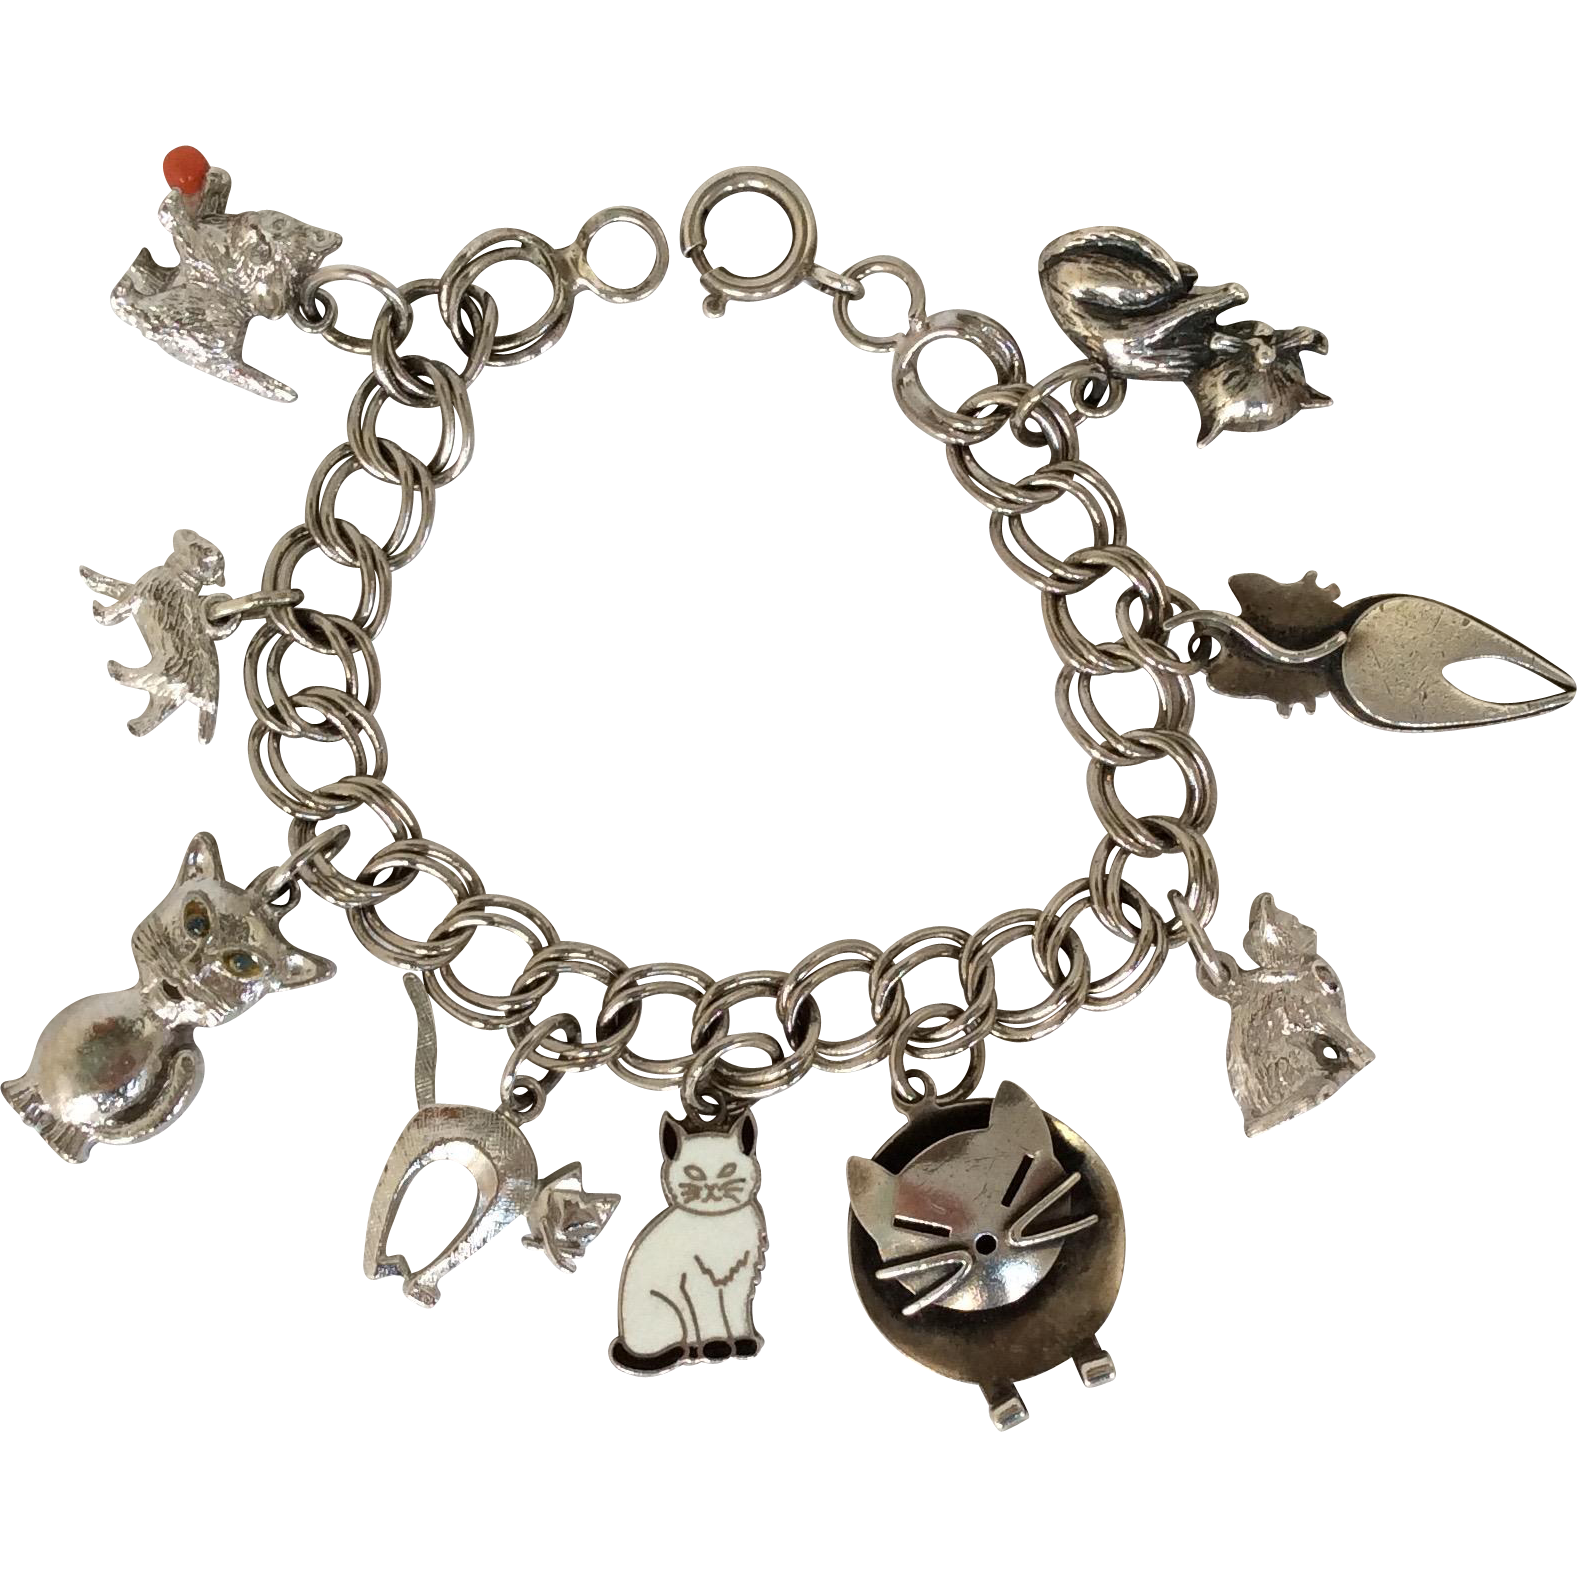 Vintage Sterling Silver Cat Charm Bracelet Caldwell S Miscellaneous Fancy Goods Llc Ruby Lane